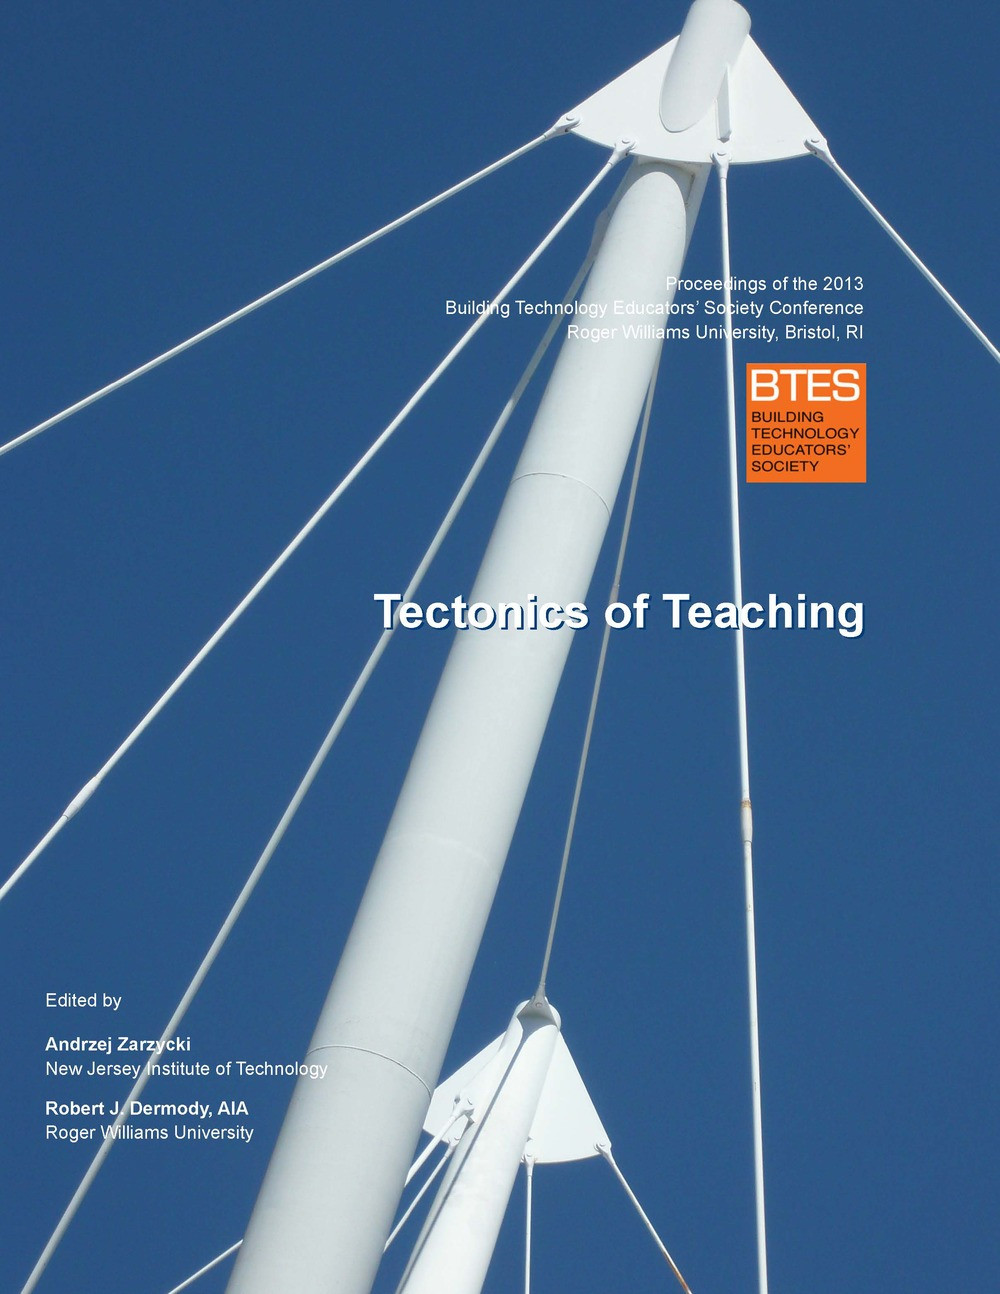 BTES2013withCover_Page_01.jpg